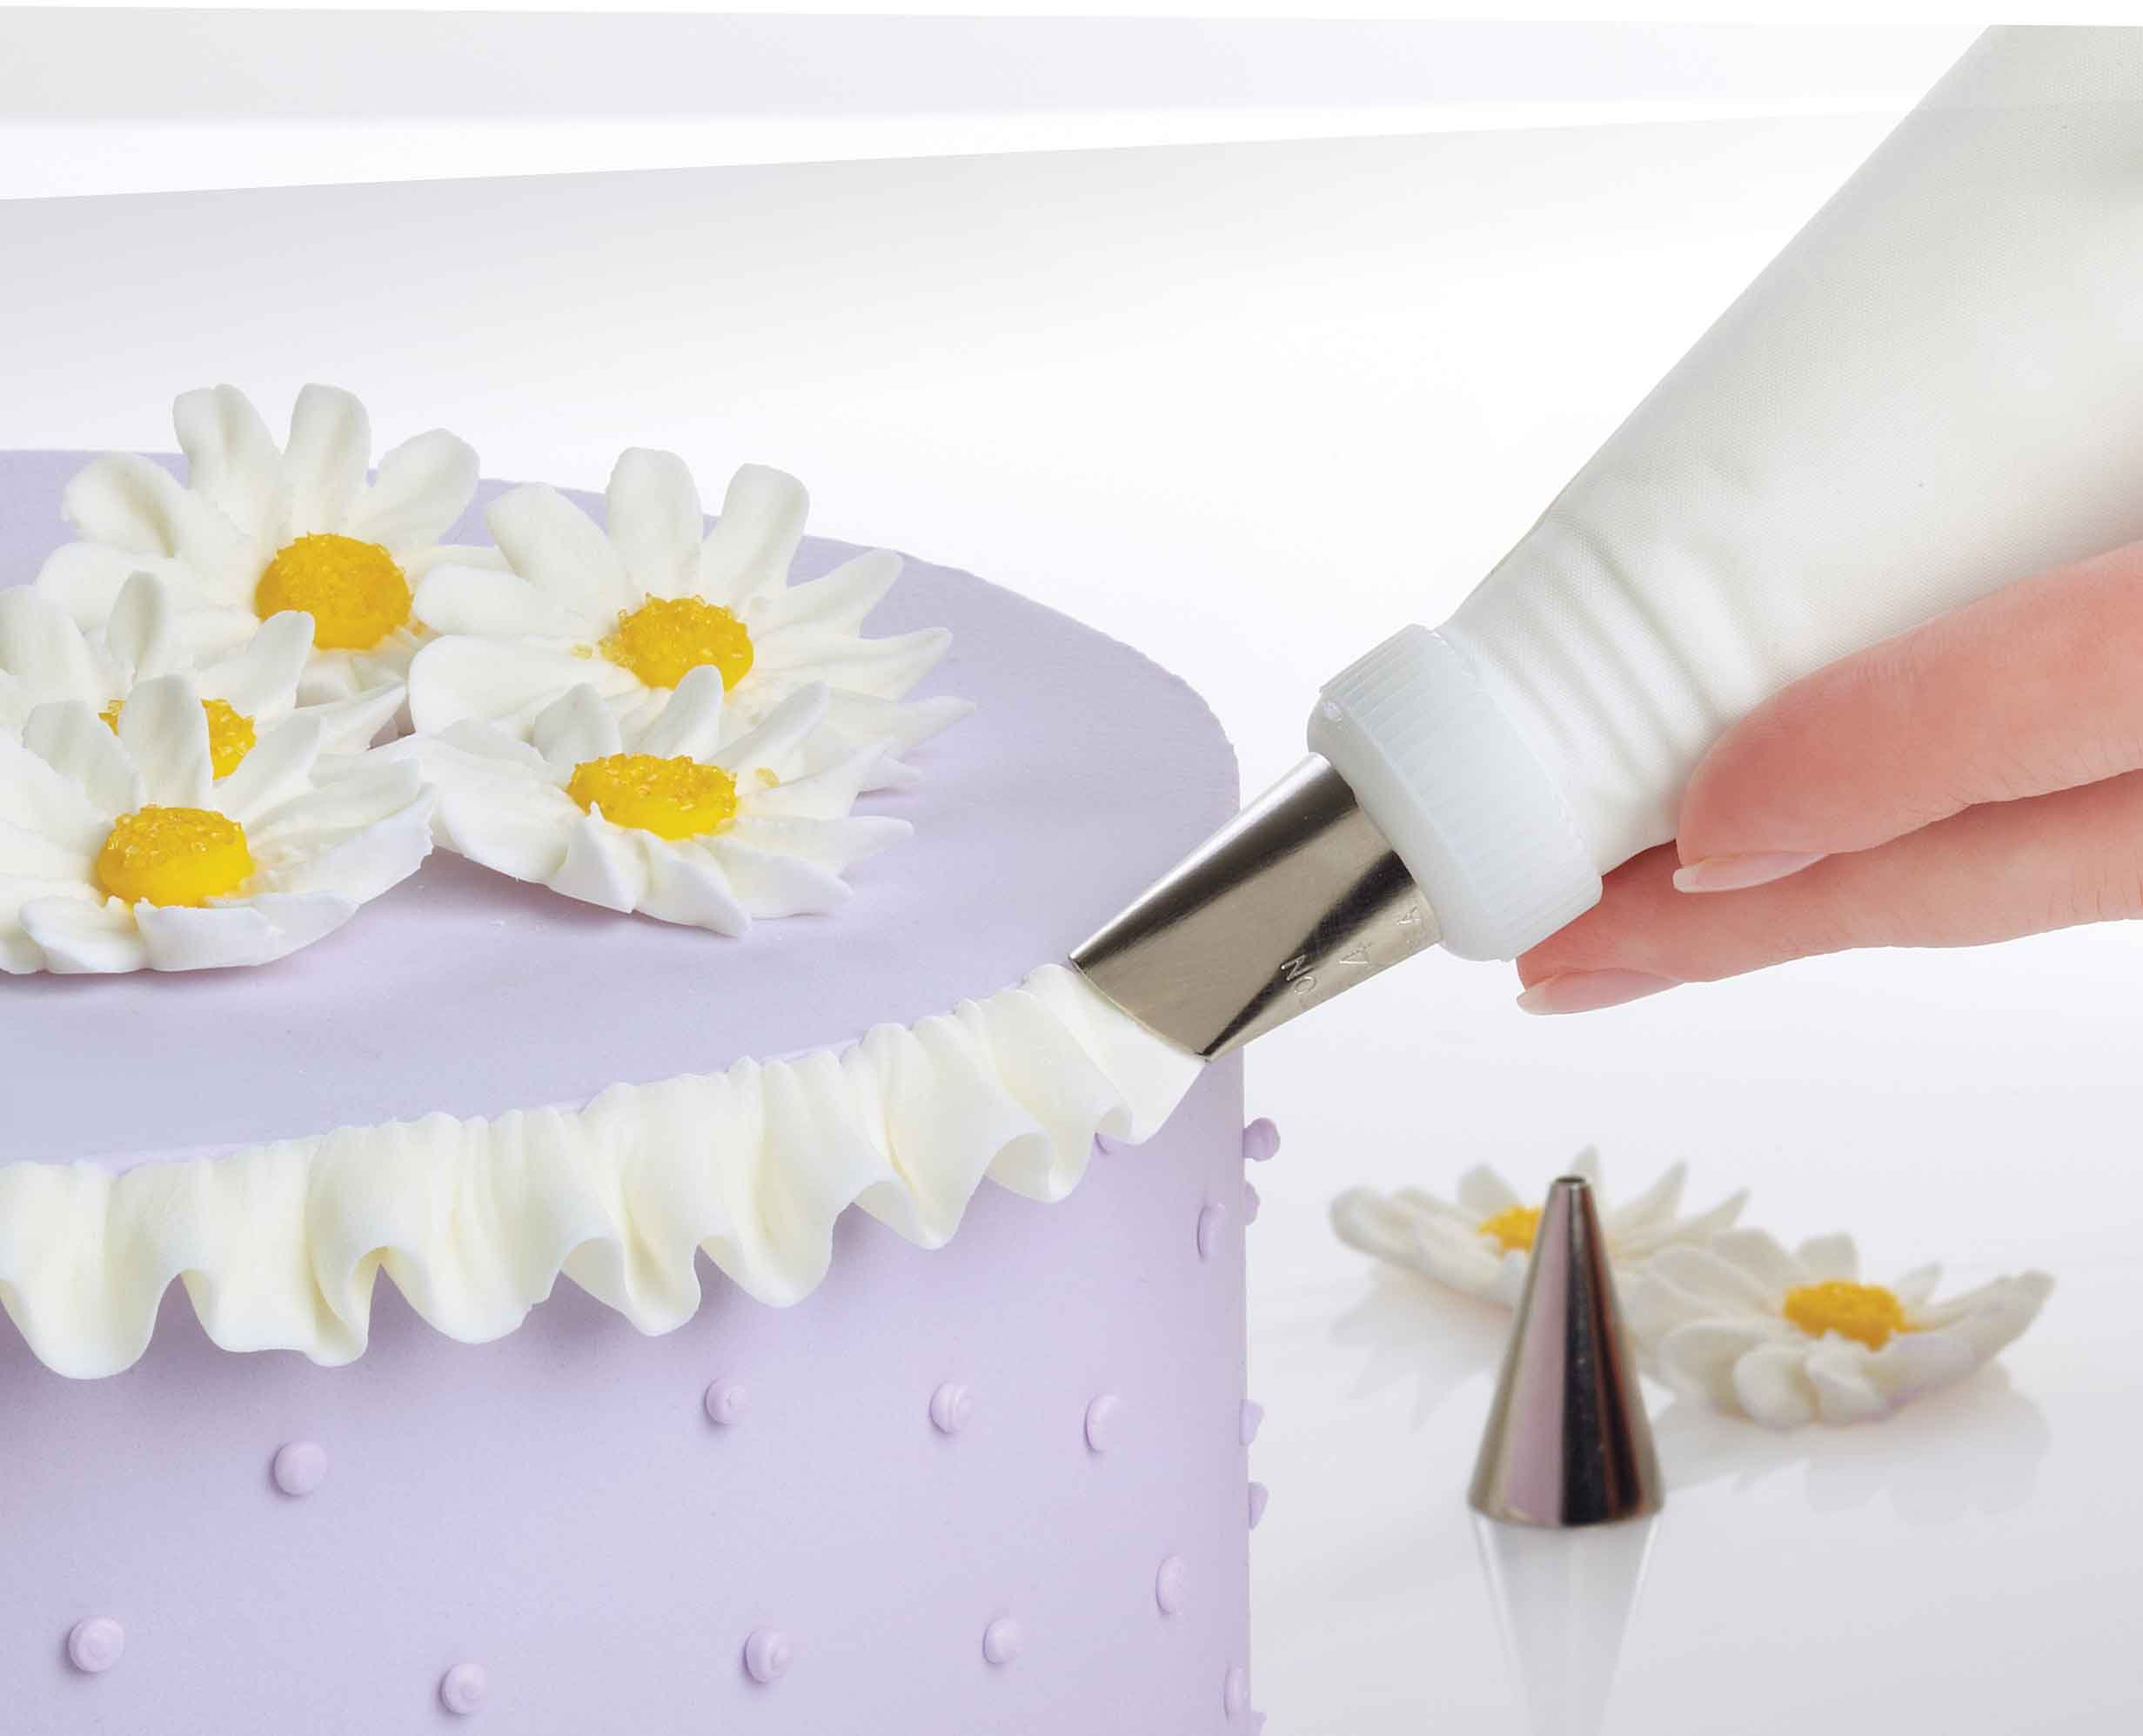 Cake Decor Kit : Wilton 2109-0309 Ultimate Professional Cake Decorating Set ...